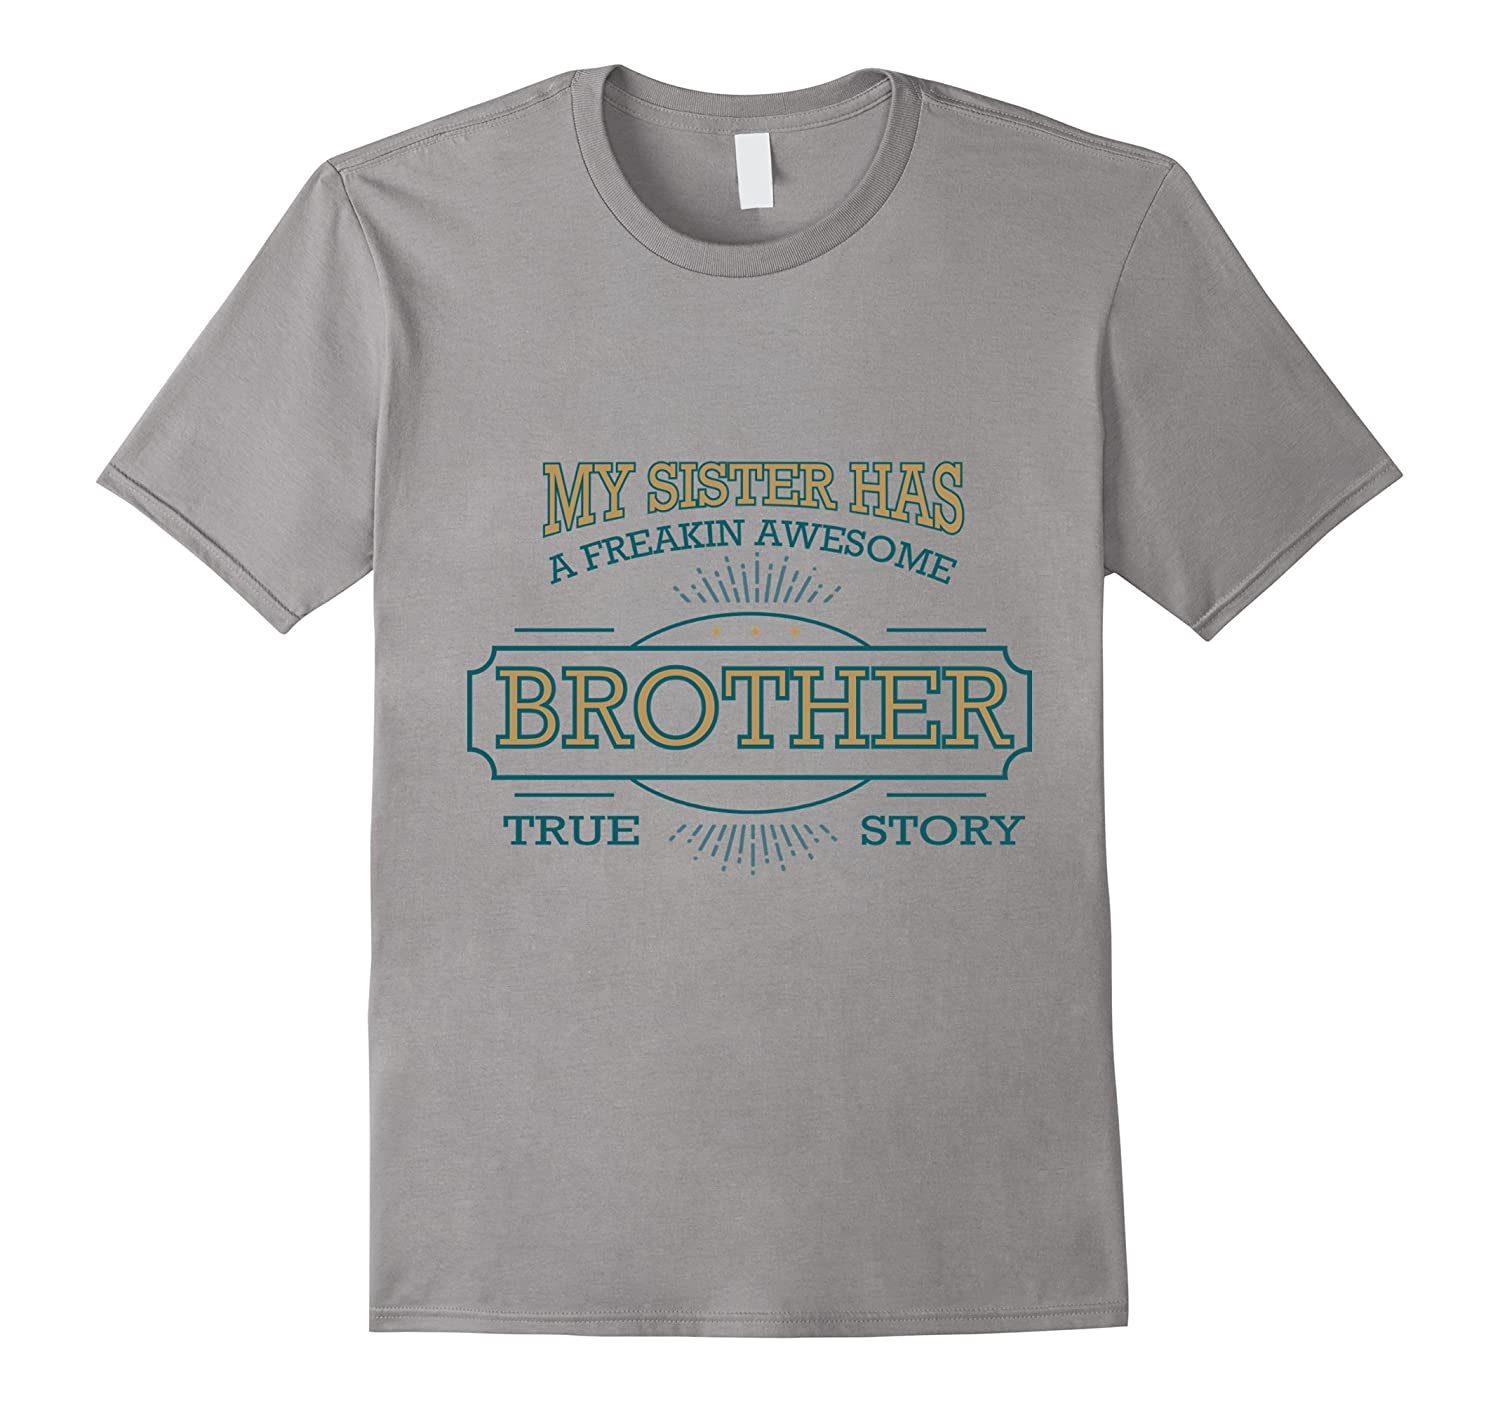 My sister has awesome brother Shirt Funny gift for brother-Art